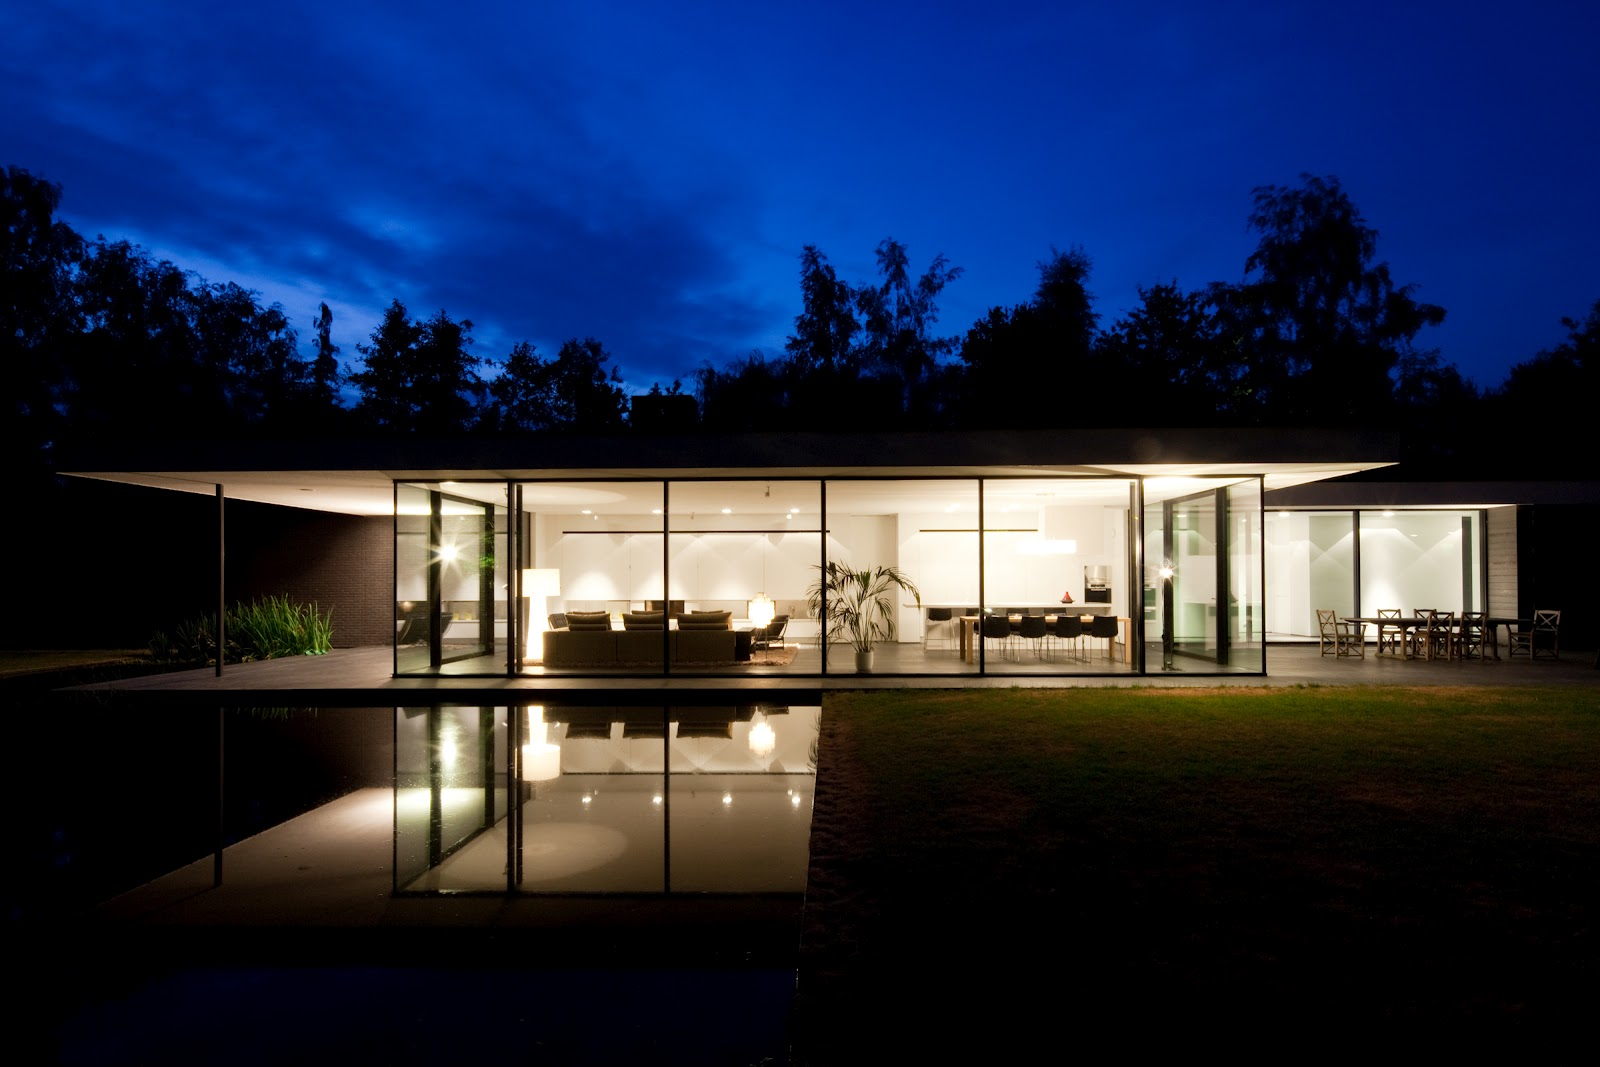 Ultra modern minimal glass house modern design by for House design minimalist modern 1 floor